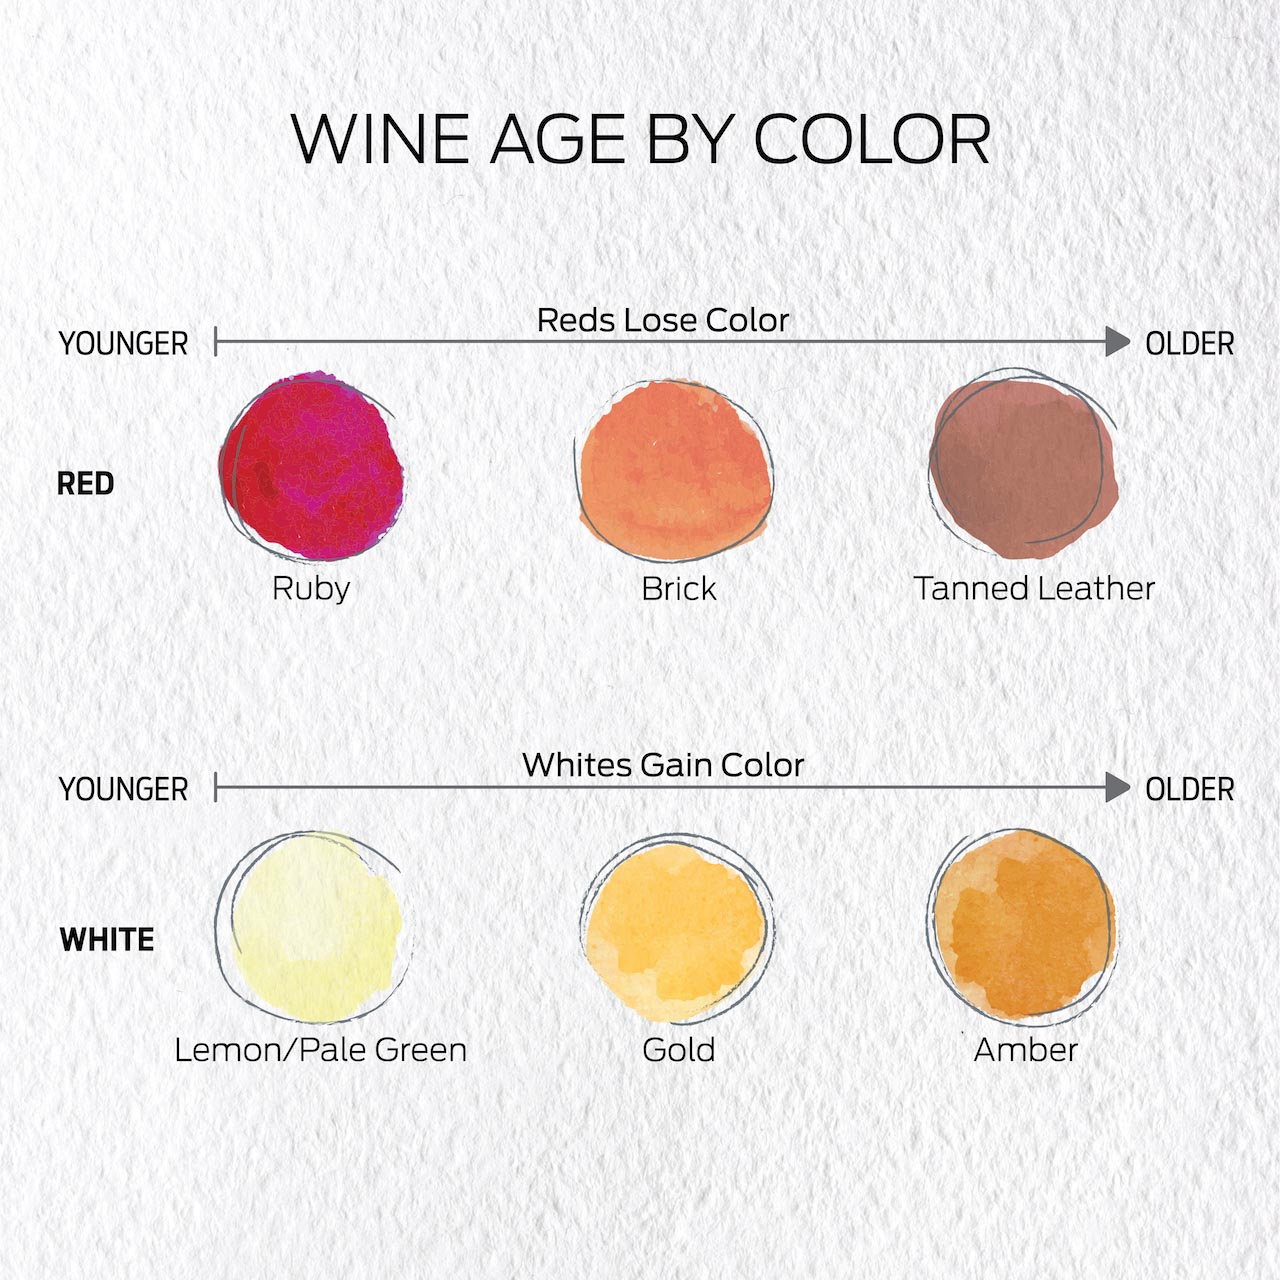 Red wine colors from young to old: Ruby, brick, tanned leather. White wine colors from young to old: Lemon/pale green, gold, amber